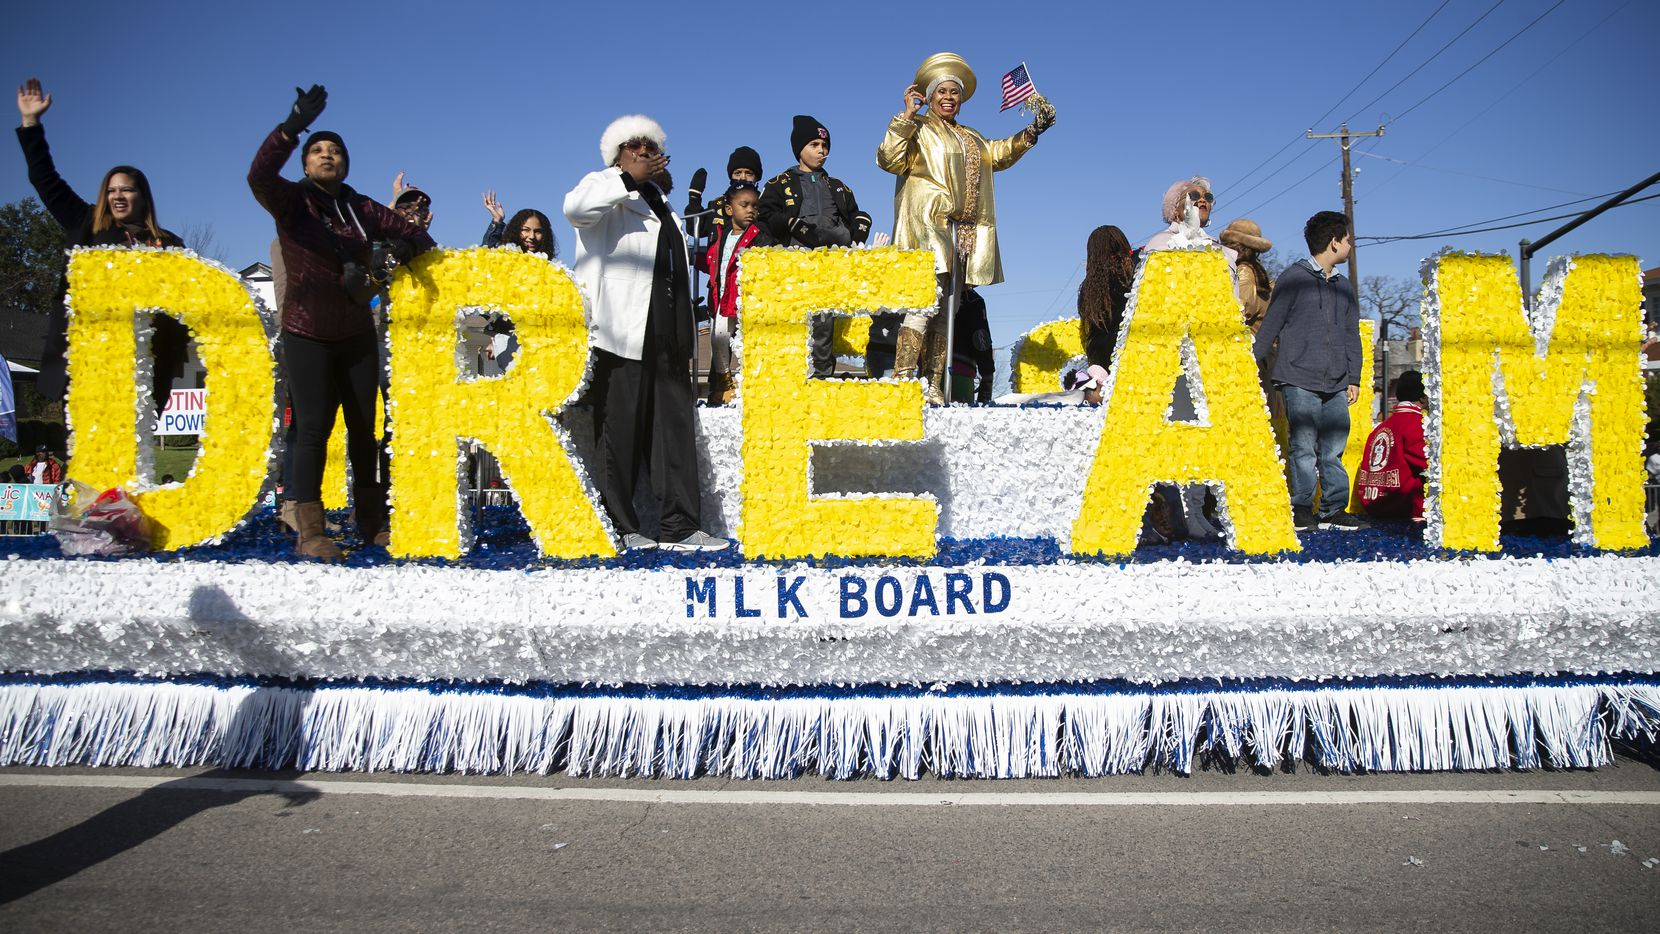 The MLK Board waves as they make their way down Martin Luther King Jr. Blvd during the 38th annual MLK Parade last January in Dallas.